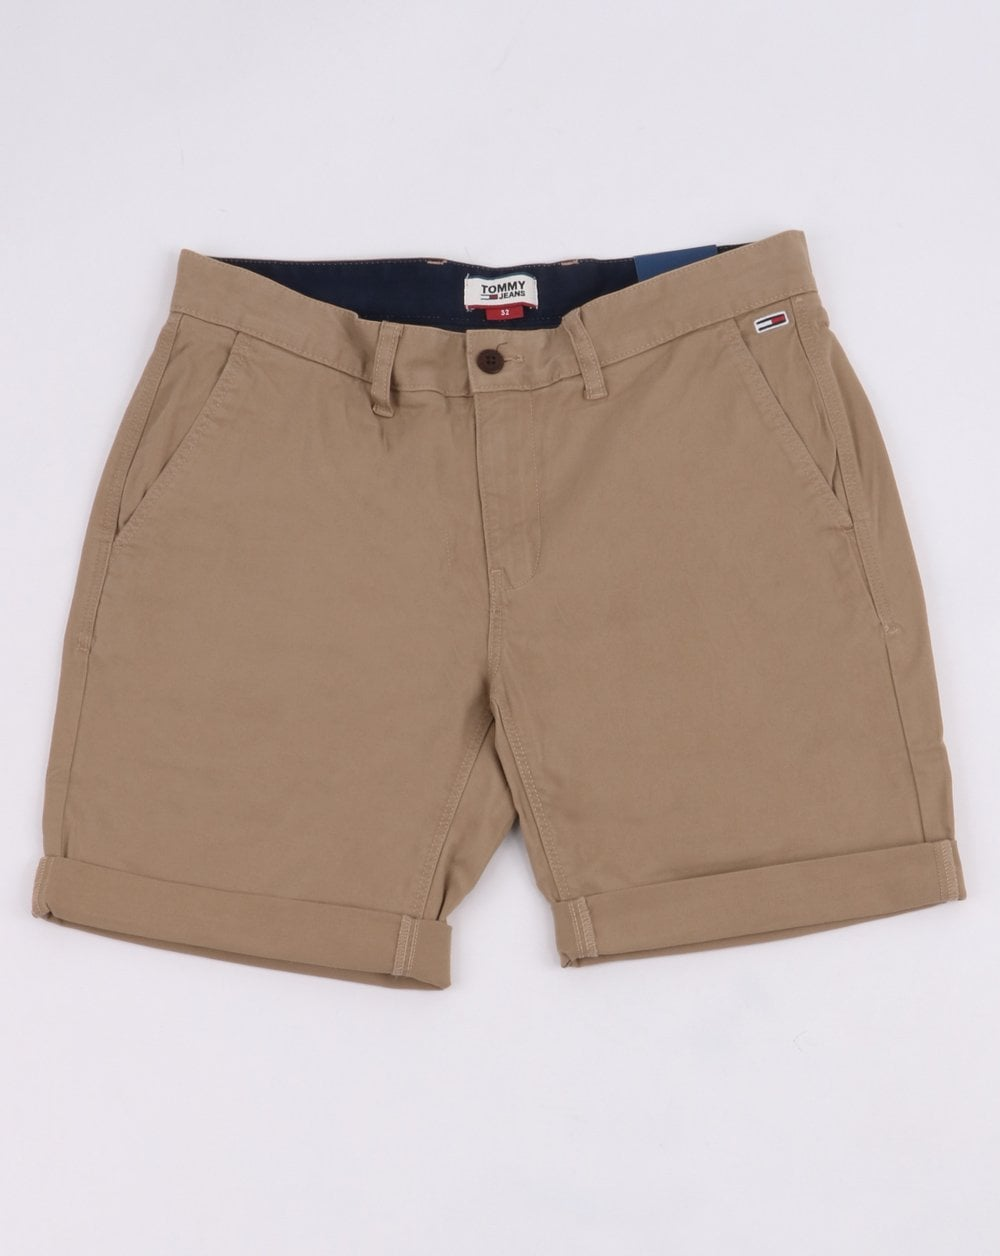 4976e410 Men's Clothing Shorts Tommy Hilfiger Mens Tommy Jeans Navy Blue Freddy  Chino Shorts W30 W32